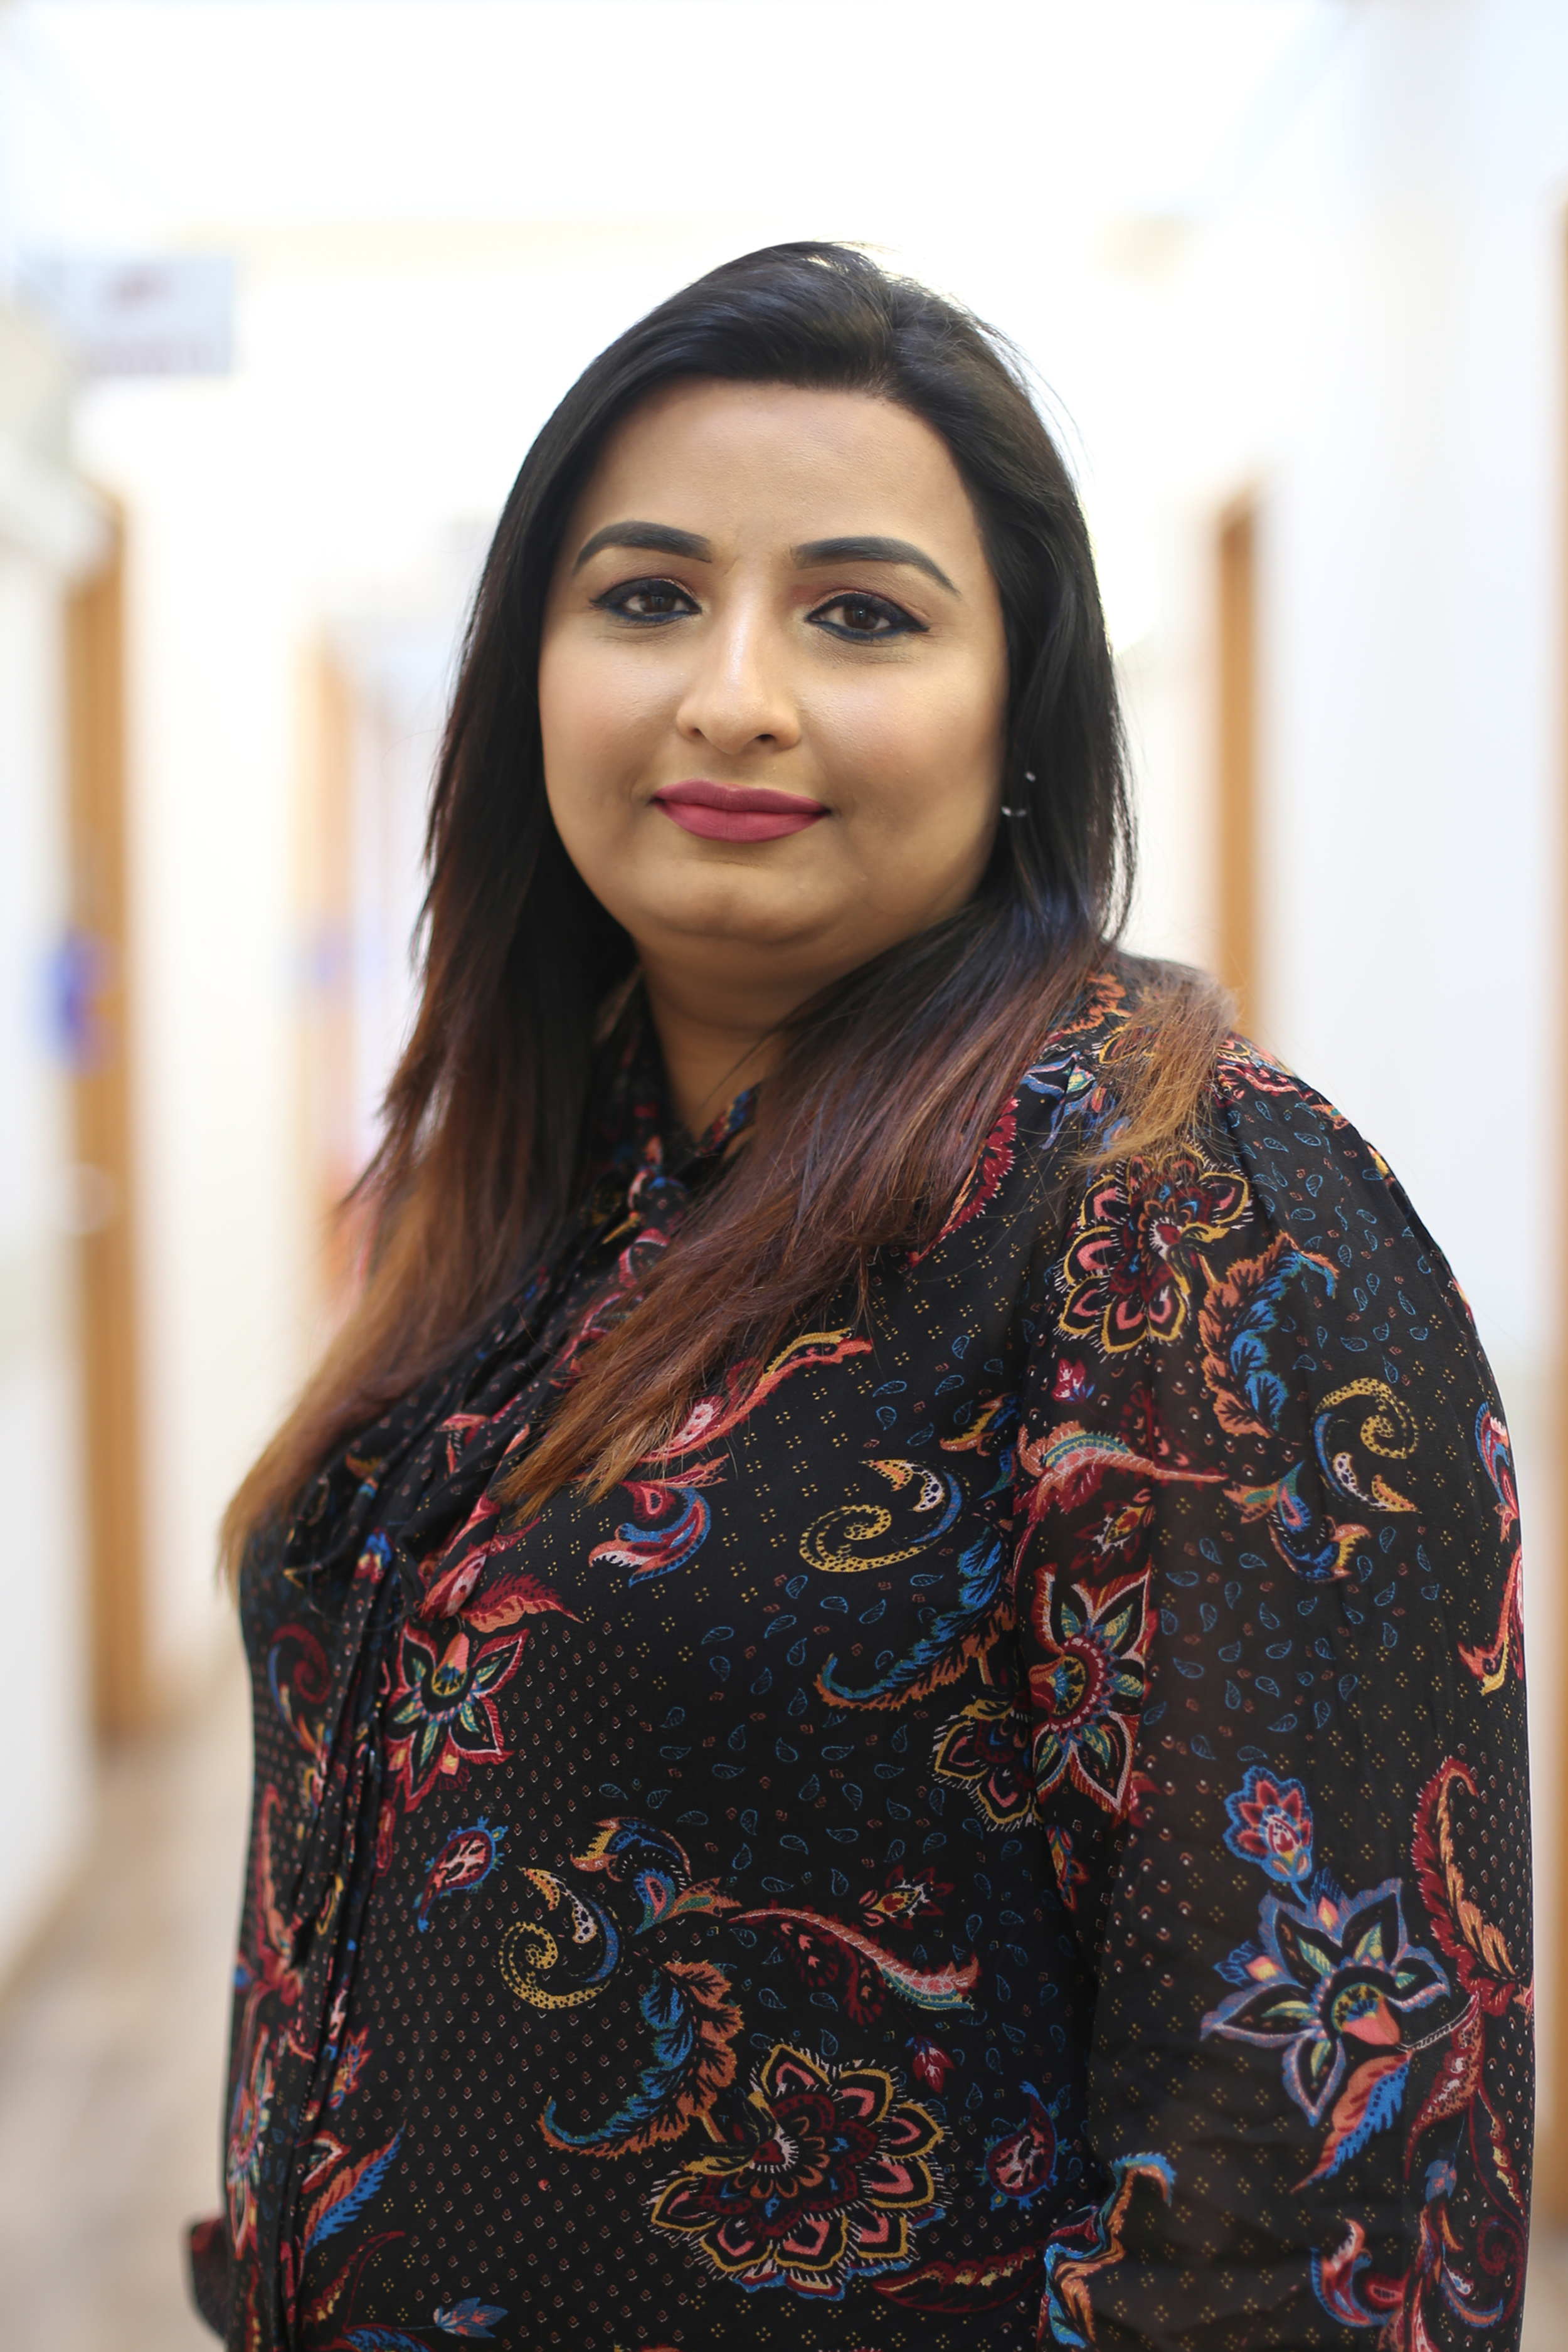 Mrs Seema Ussene - Practice Administrator | Referrals LeadSeema is a full time working mother of 2 children and is a dedicated individual who has strong family values. She is also the Child Safeguarding administrator for the practice.Experience: 4 years in primary CareLanguages: English | Hindi | Gujarati | UrduAchievements:• Medical Terminology Foundation Training• Diploma in Children & Young People's Workforce